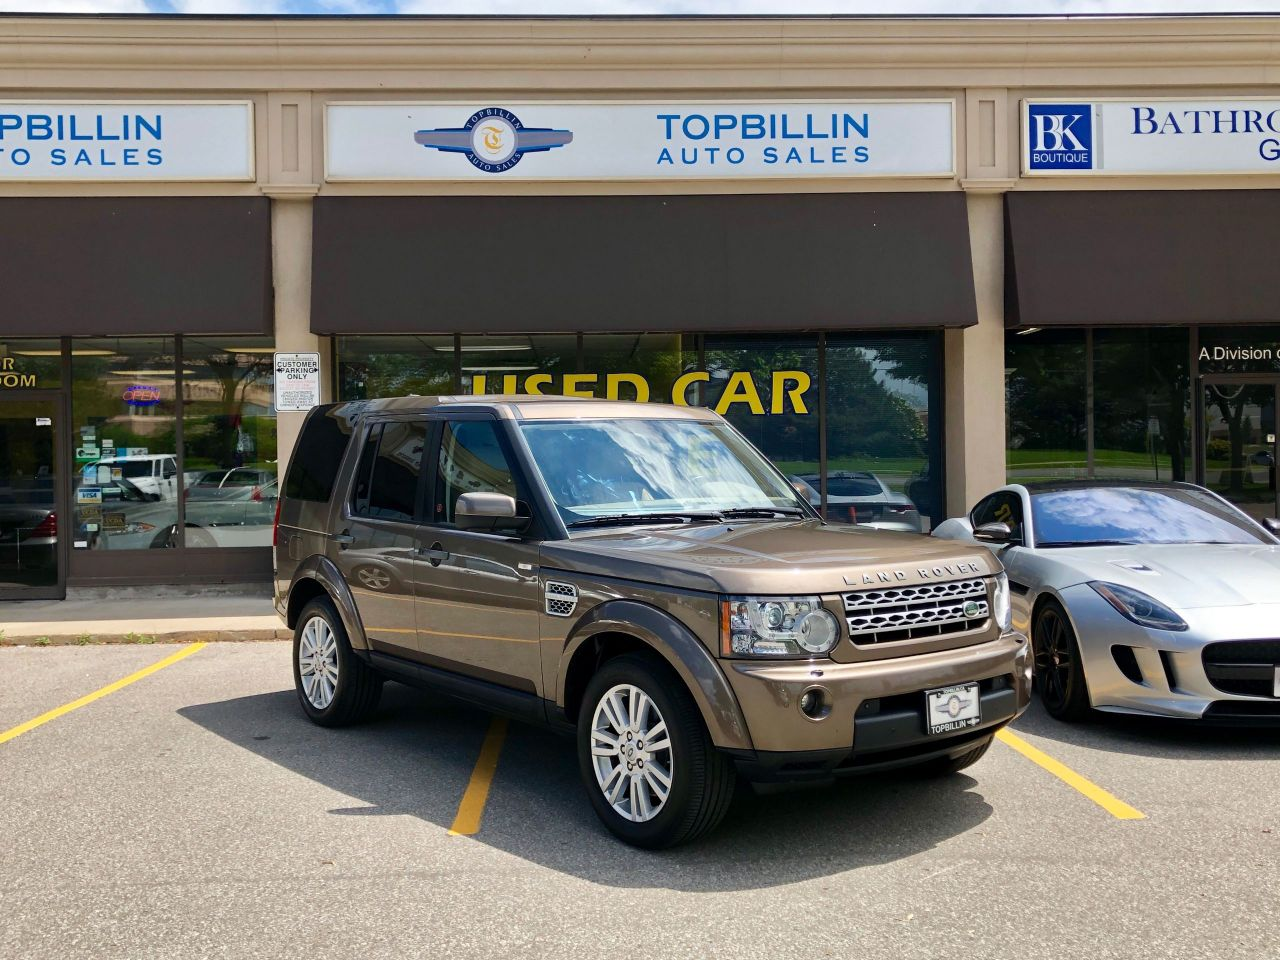 2011 Land Rover LR4 LUX, 1 owner, Clean CarFax